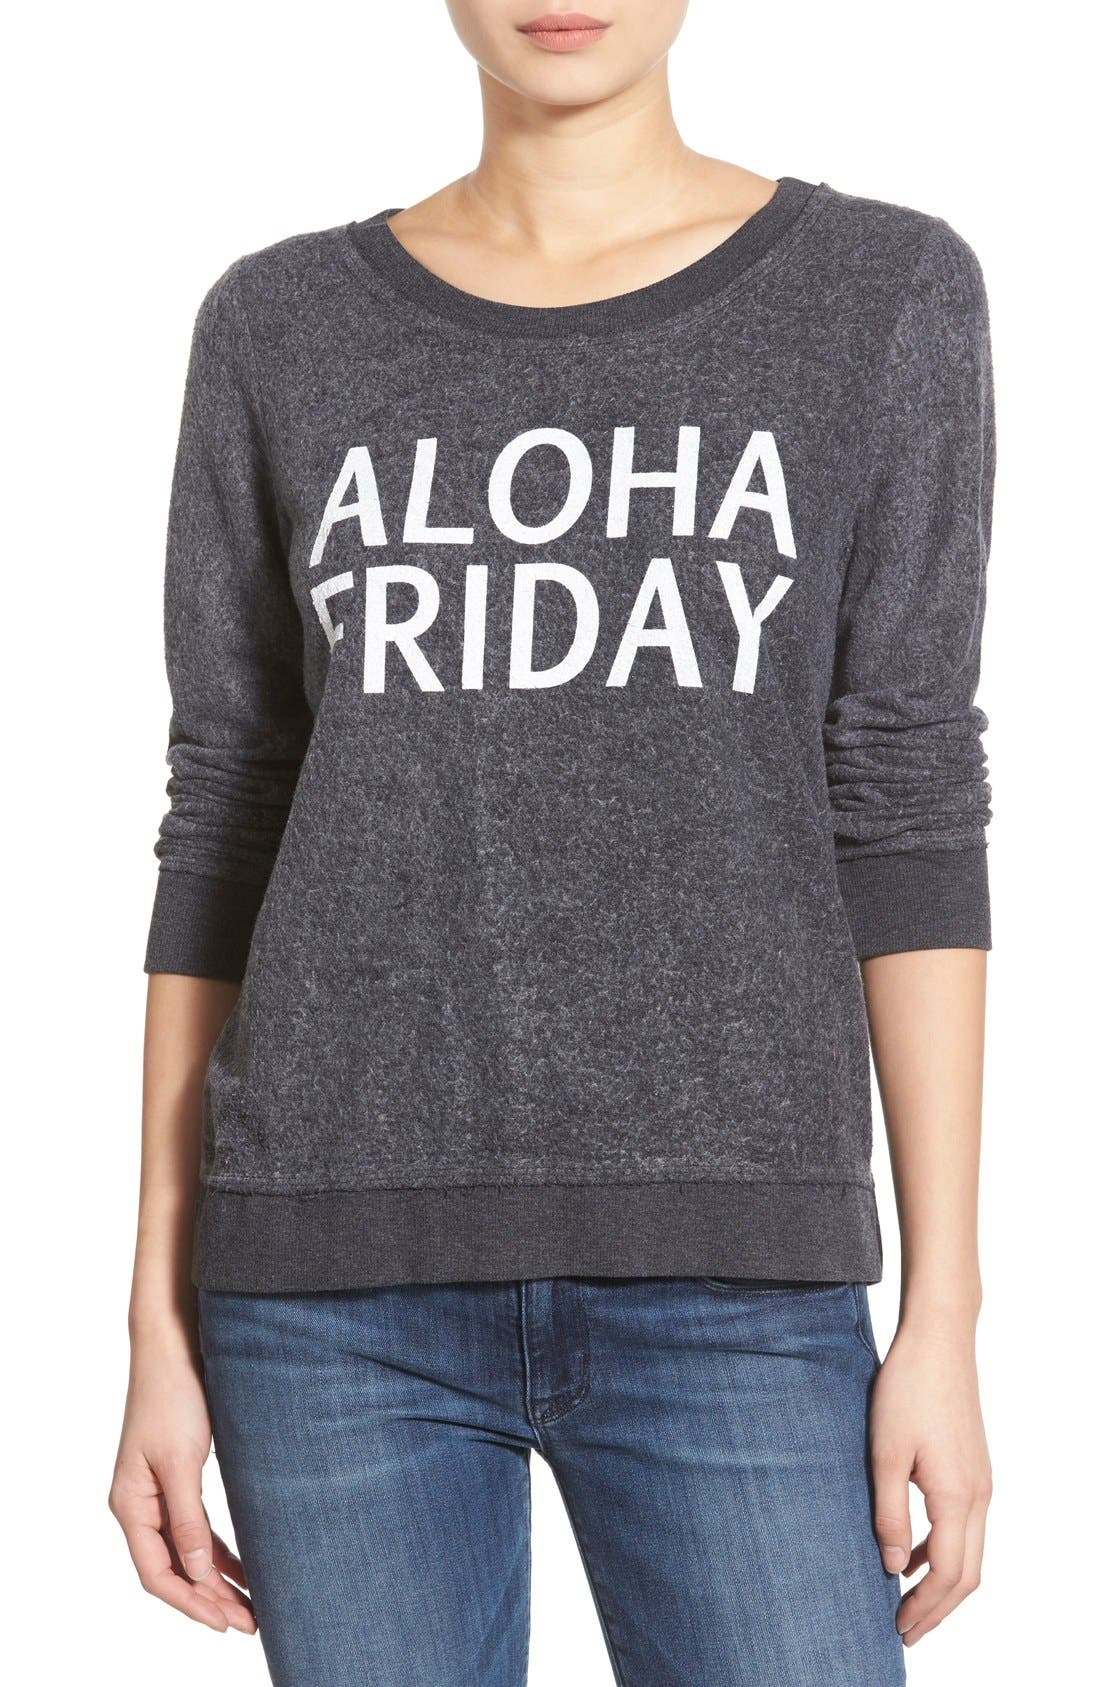 Alternate Image 1 Selected - Chaser 'Aloha Friday' Pullover Sweatshirt